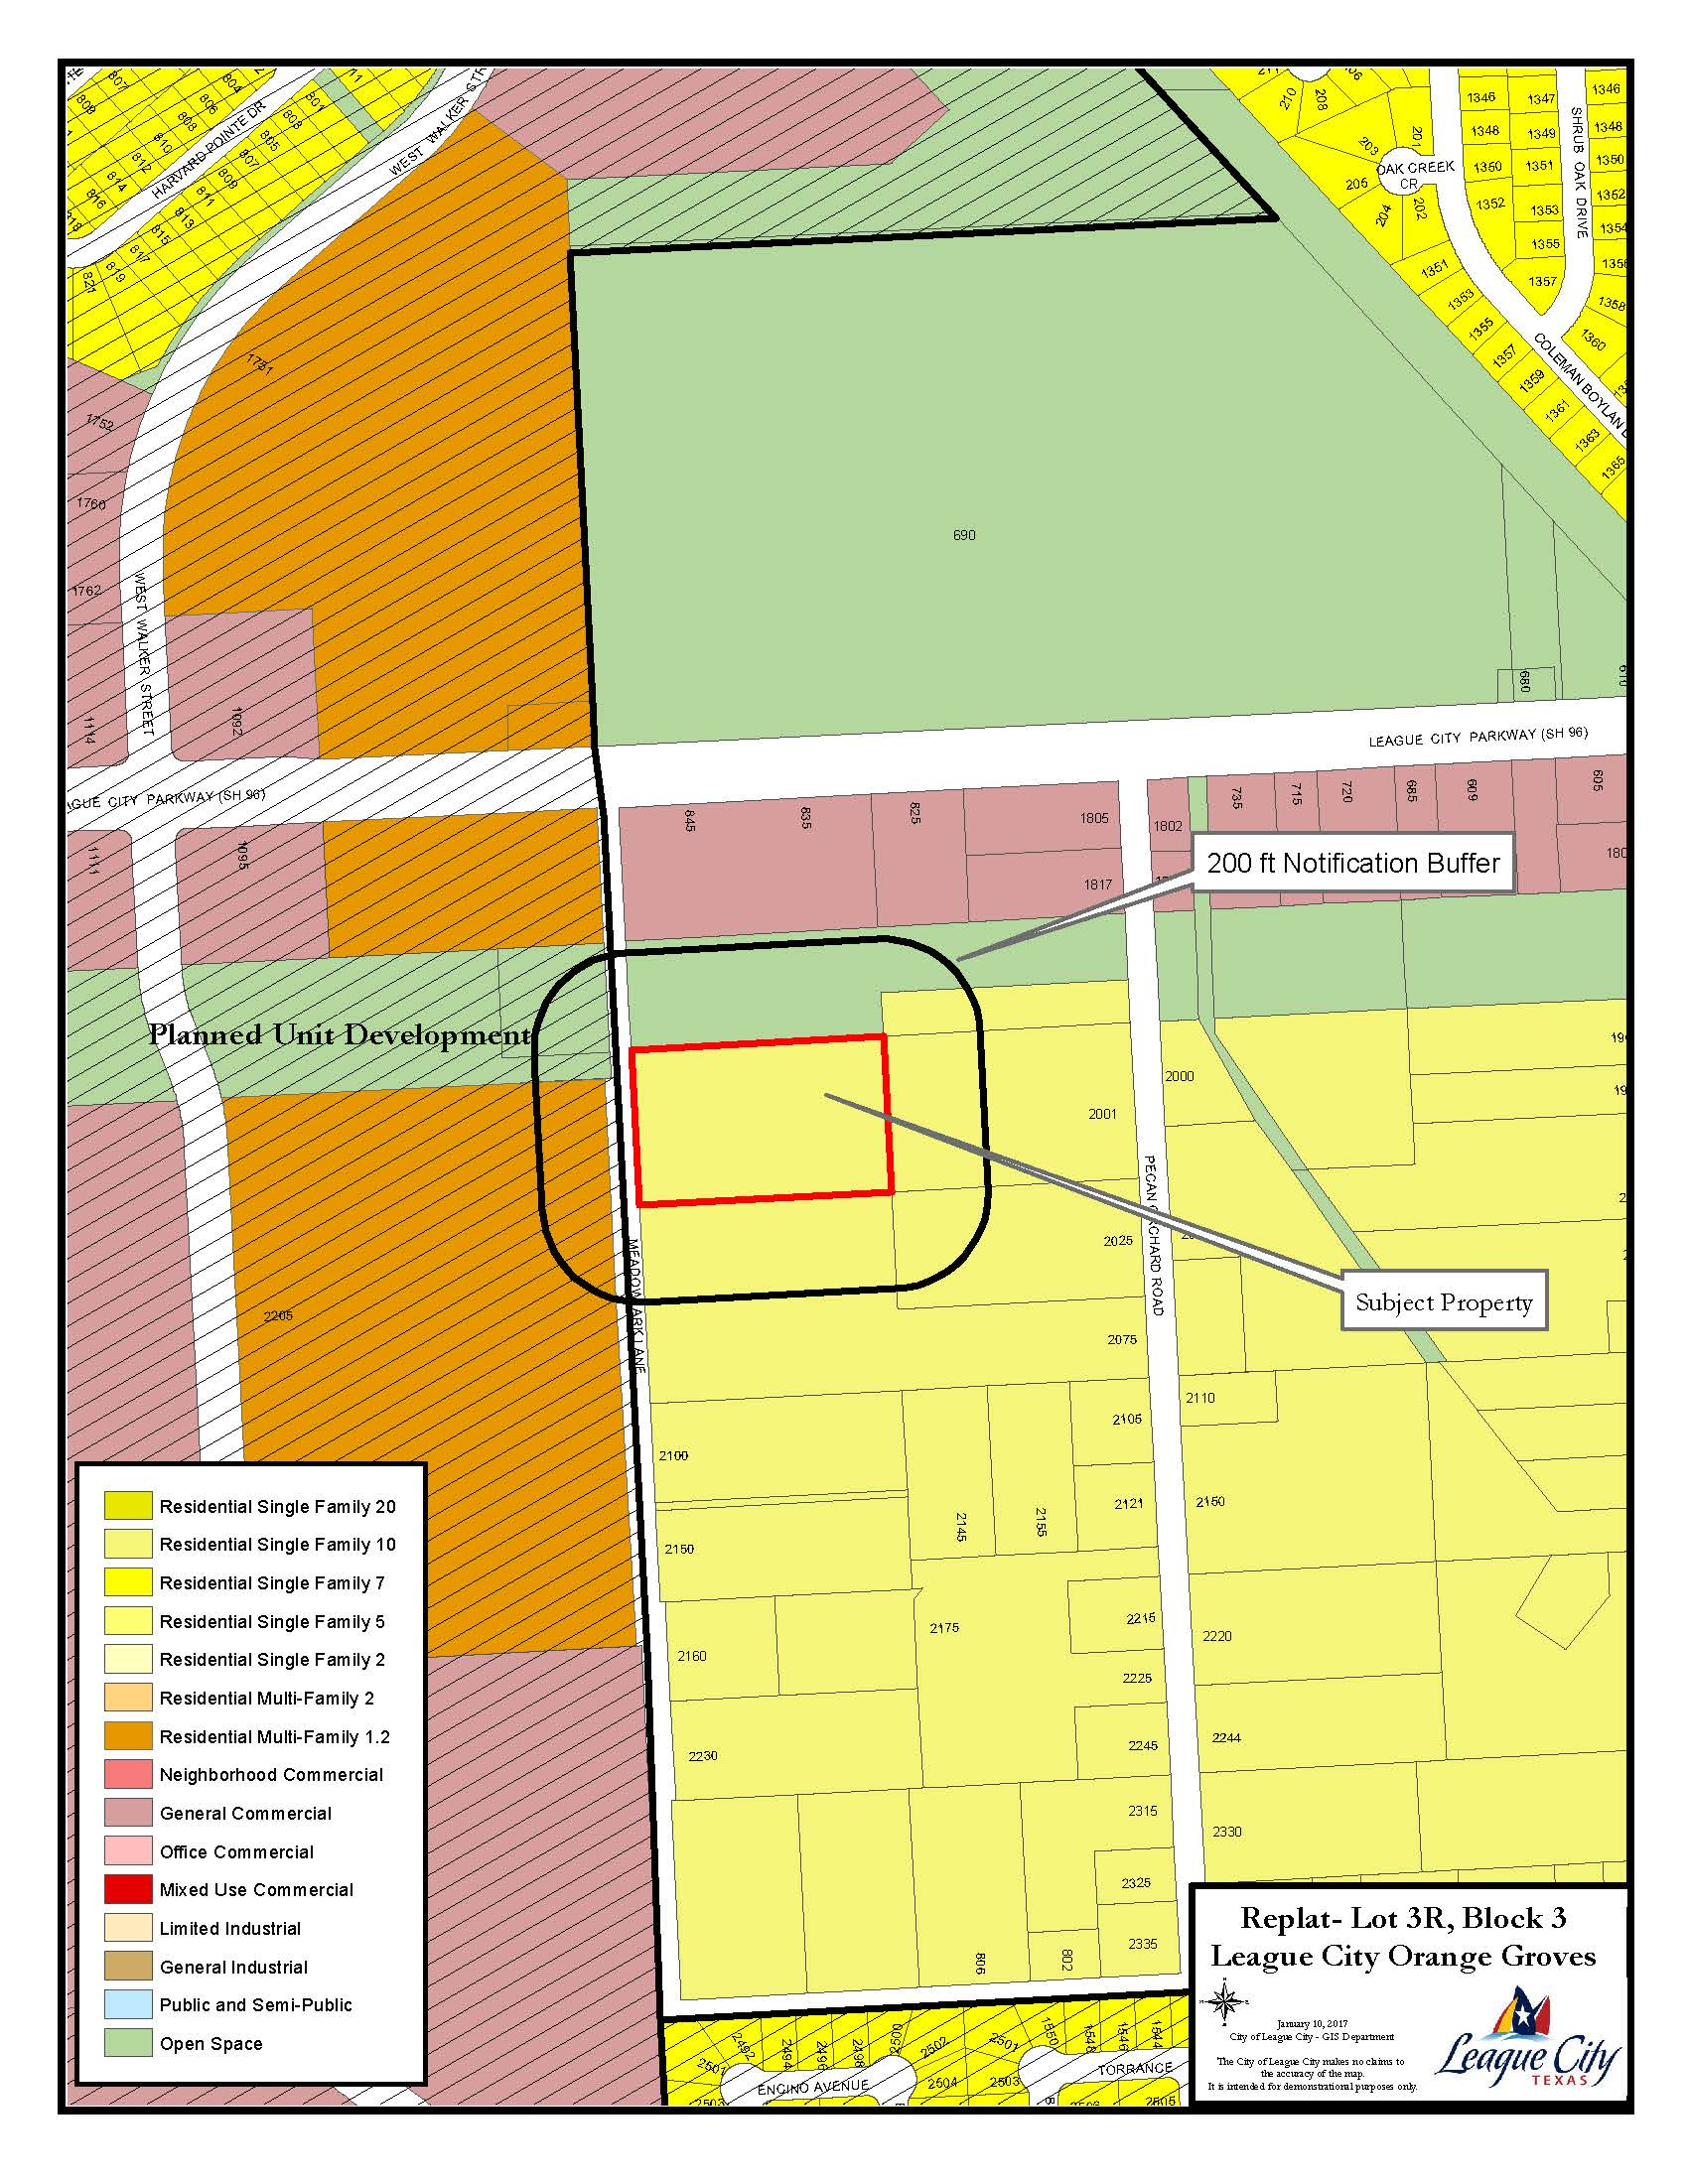 Replat Orange Groves Lot 3R Blk 3 Zoning.jpg